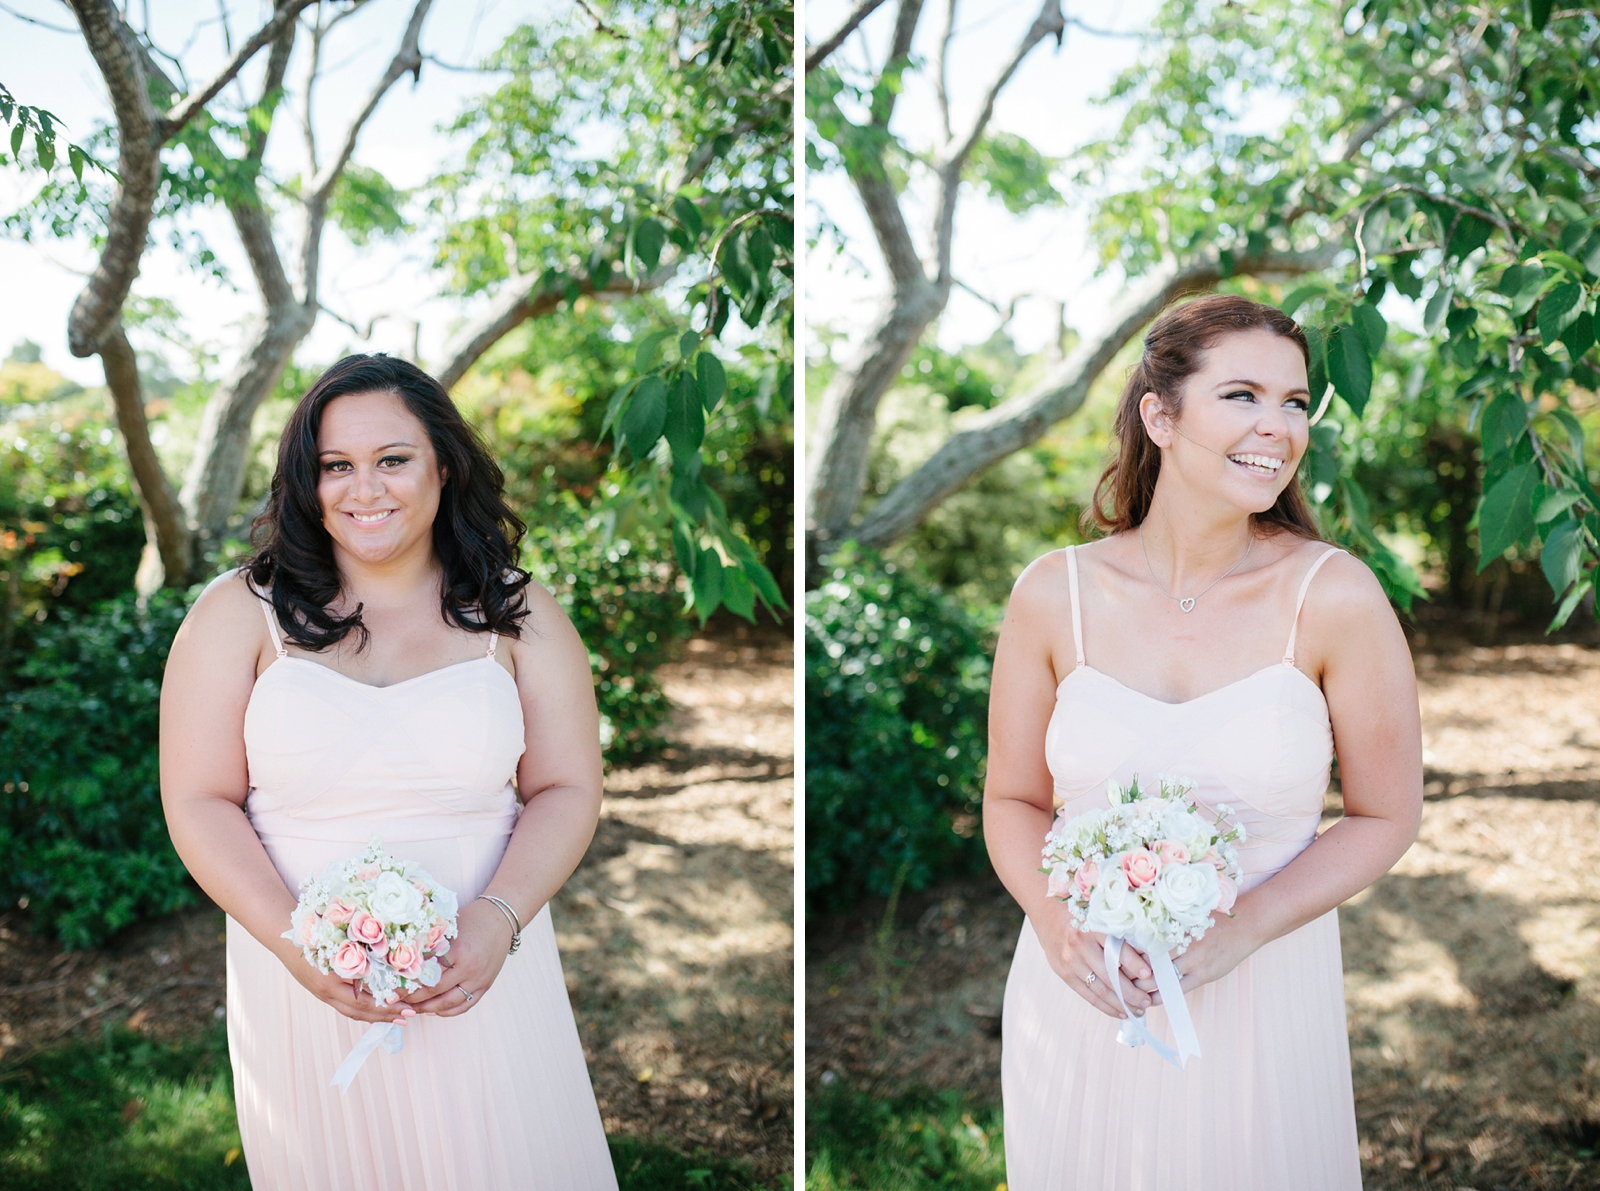 ConnorLaura_Auckland Wedding Photographer_Patty Lagera_0071.jpg